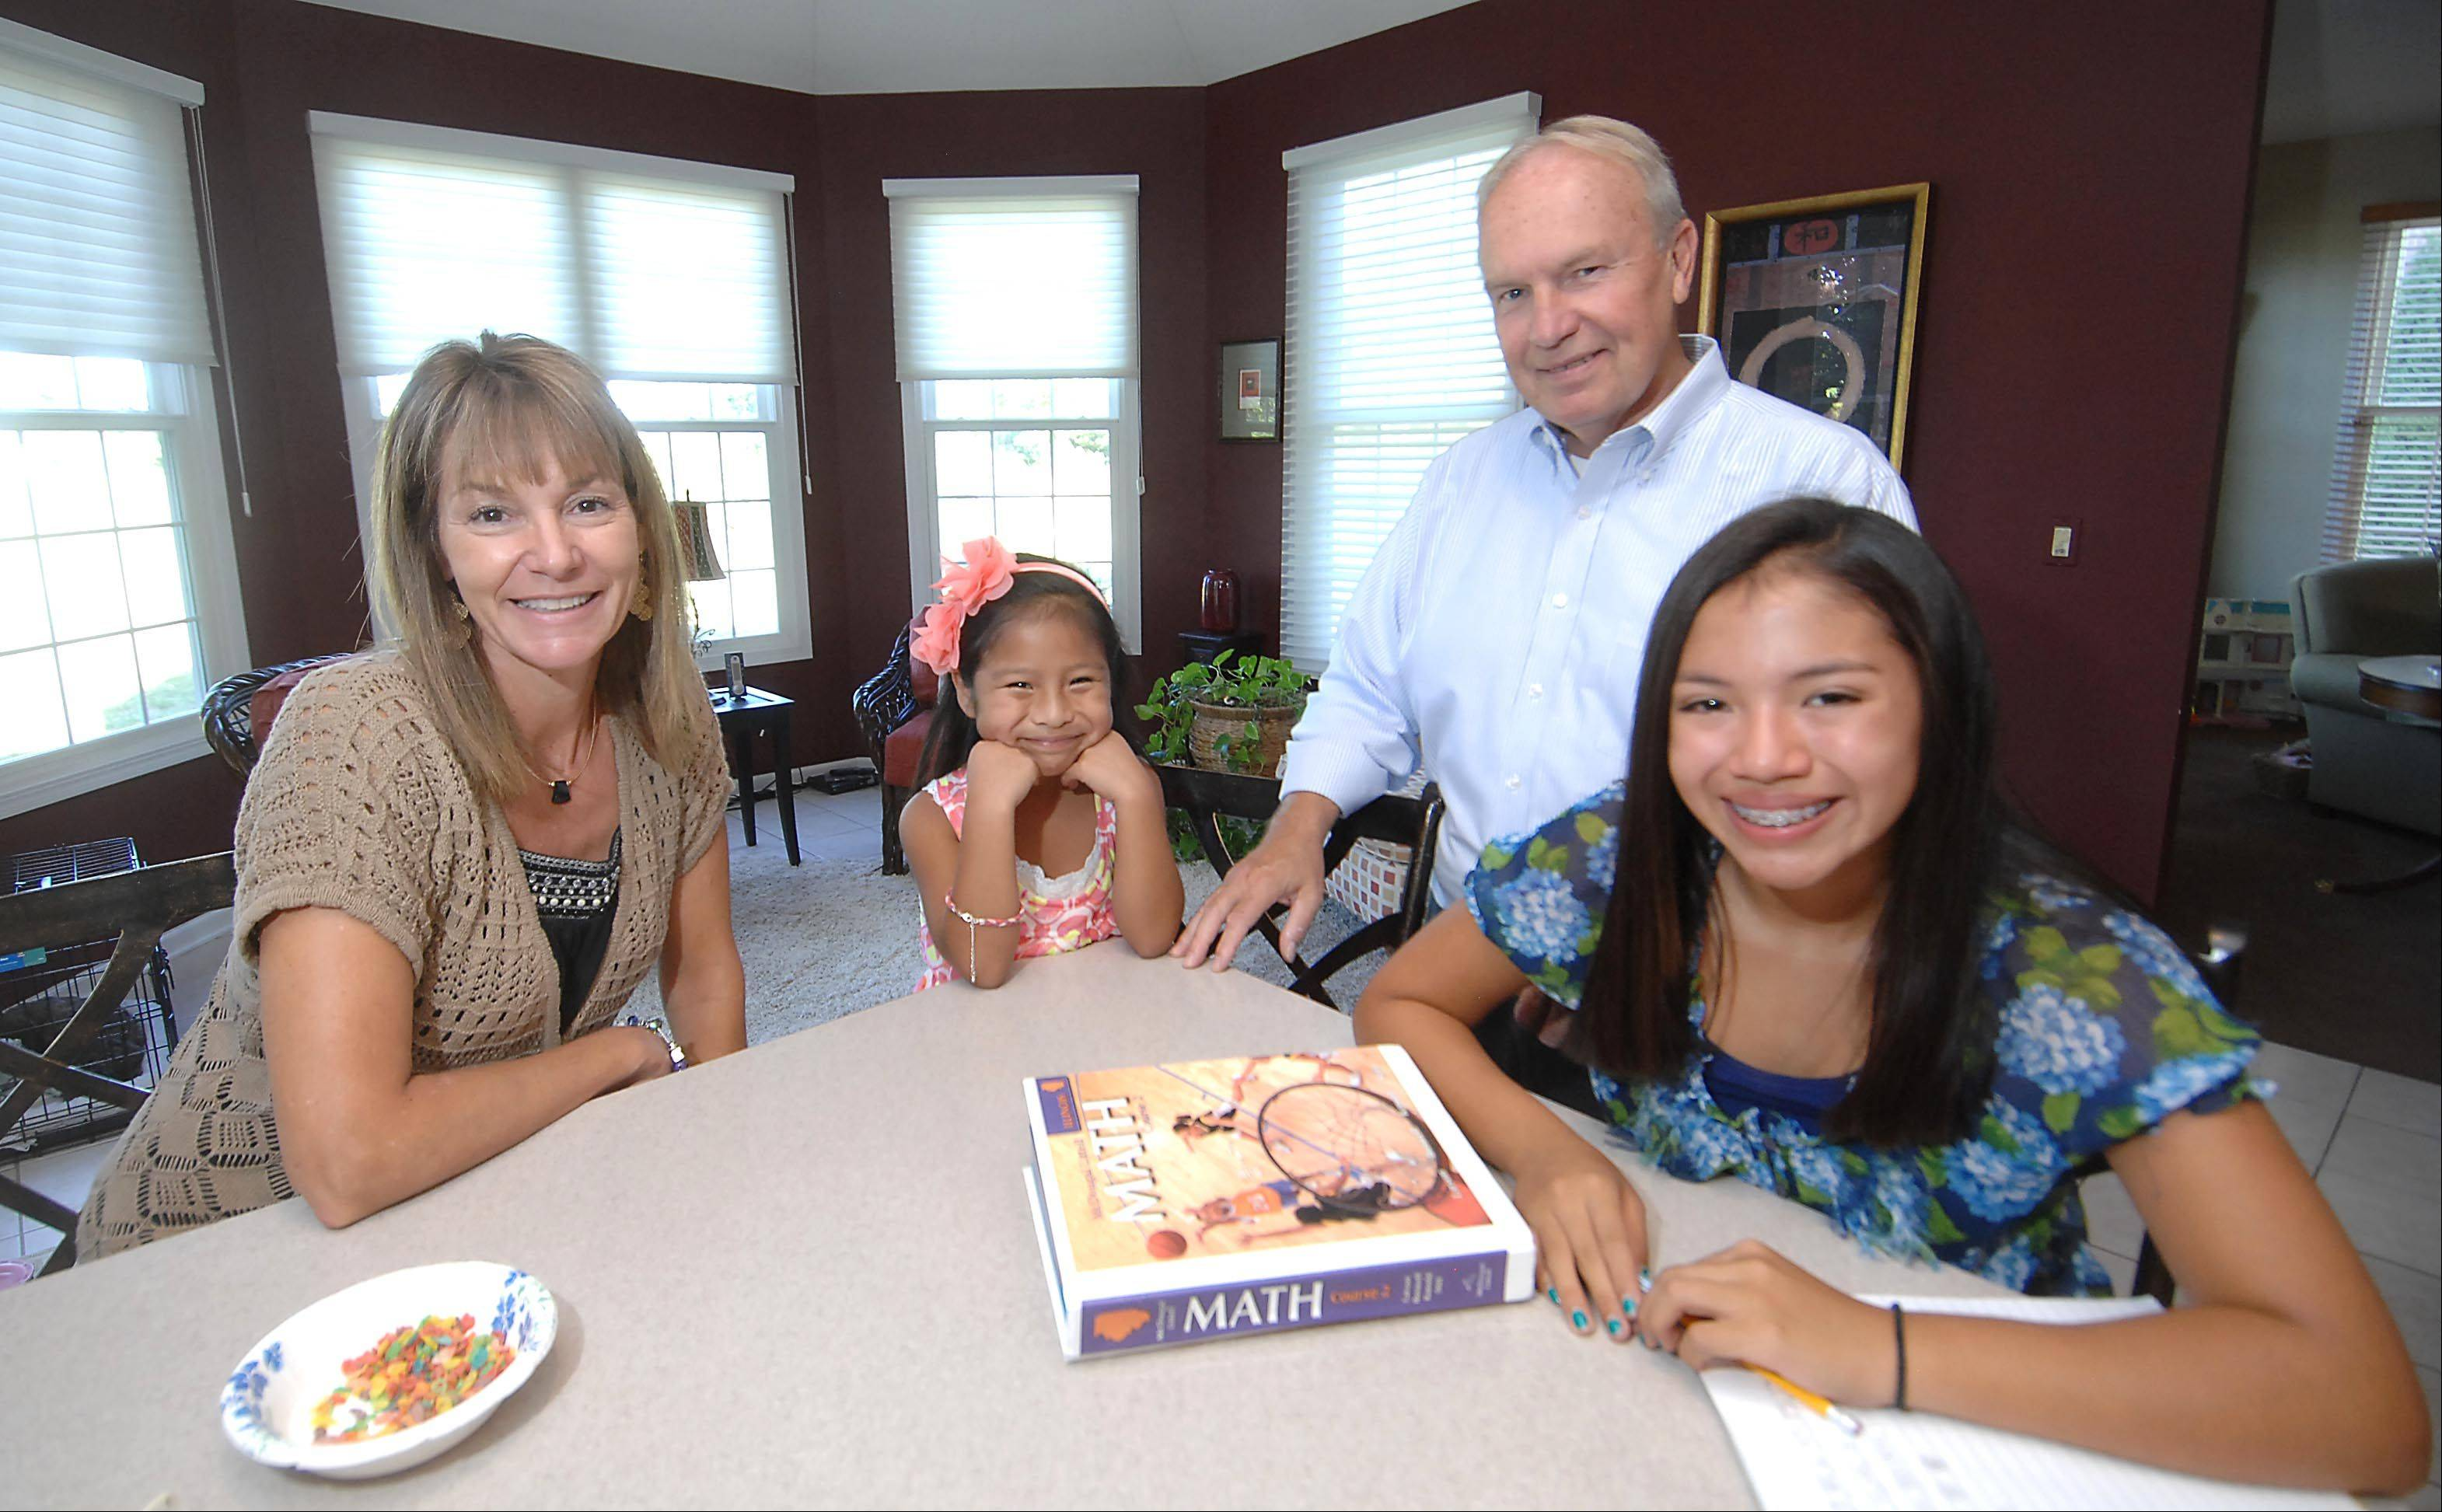 Russ and Leeann Schweizer with their adopted Guatemalan children Ysabel and Gabriela, right, in their Lakewood home. Russ recently returned from a trip with Living Water International to drill a well in Guatemala.